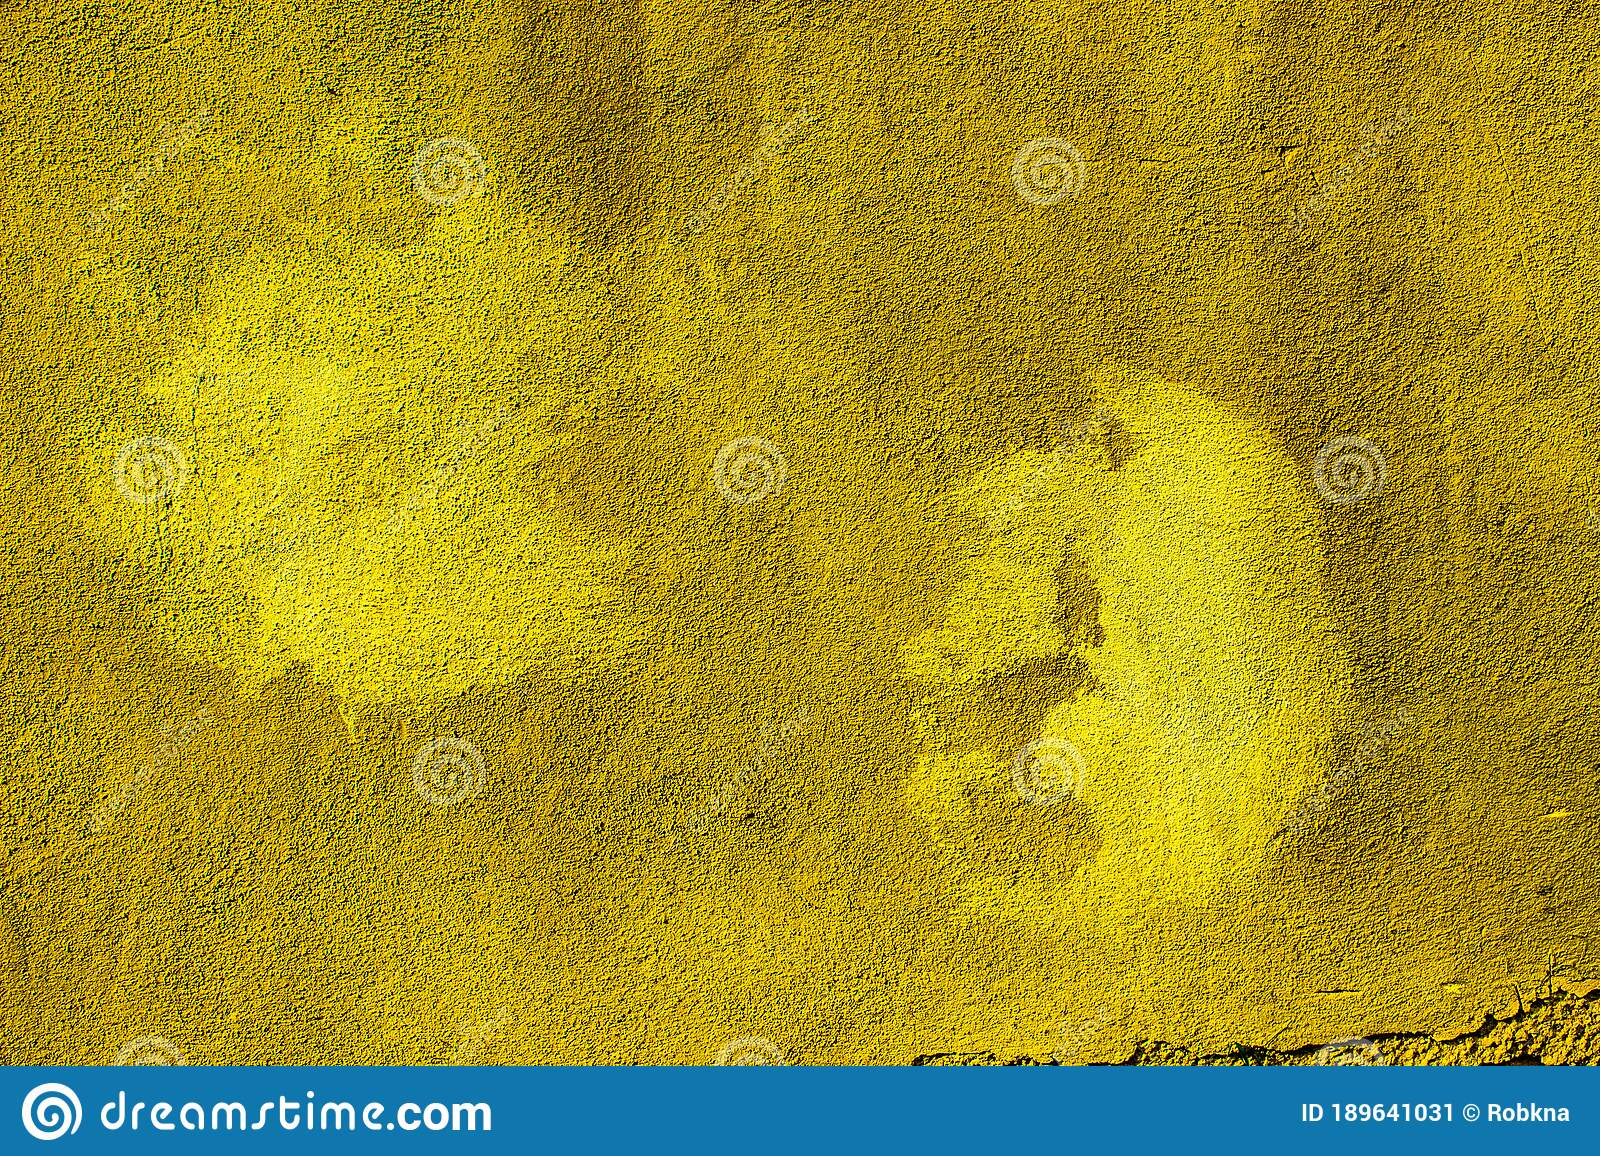 Yellow Colored Abstract Wall Background With Textures Of Different Shades Of Yellow Stock Image Image Of Rough Aureolin 189641031